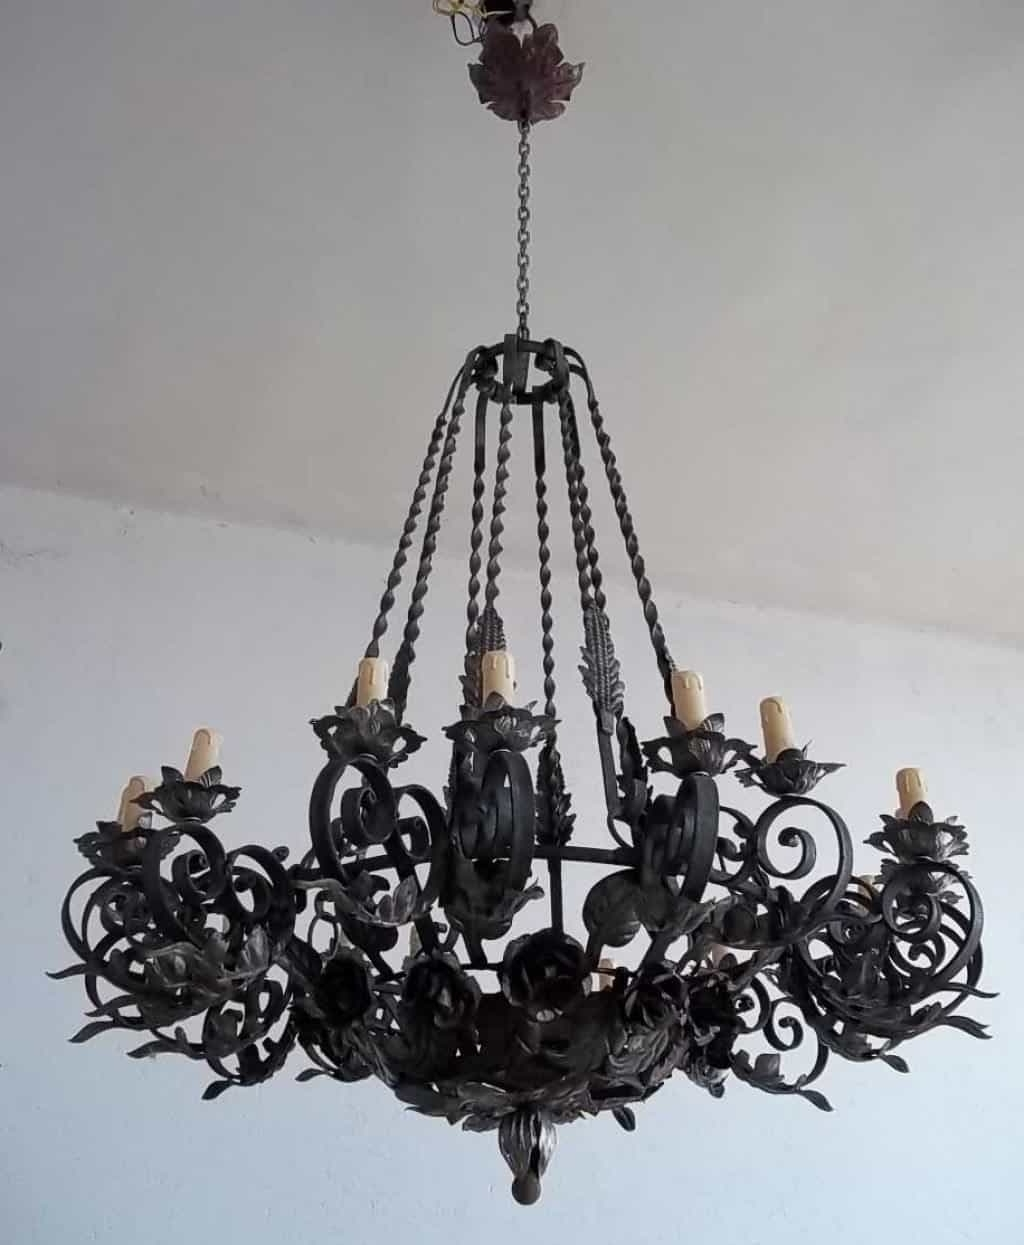 Newest Wrought Iron Chandelier Intended For Black Vintage Wrought Iron Chandelier Hung In The White Ceiling (View 6 of 20)